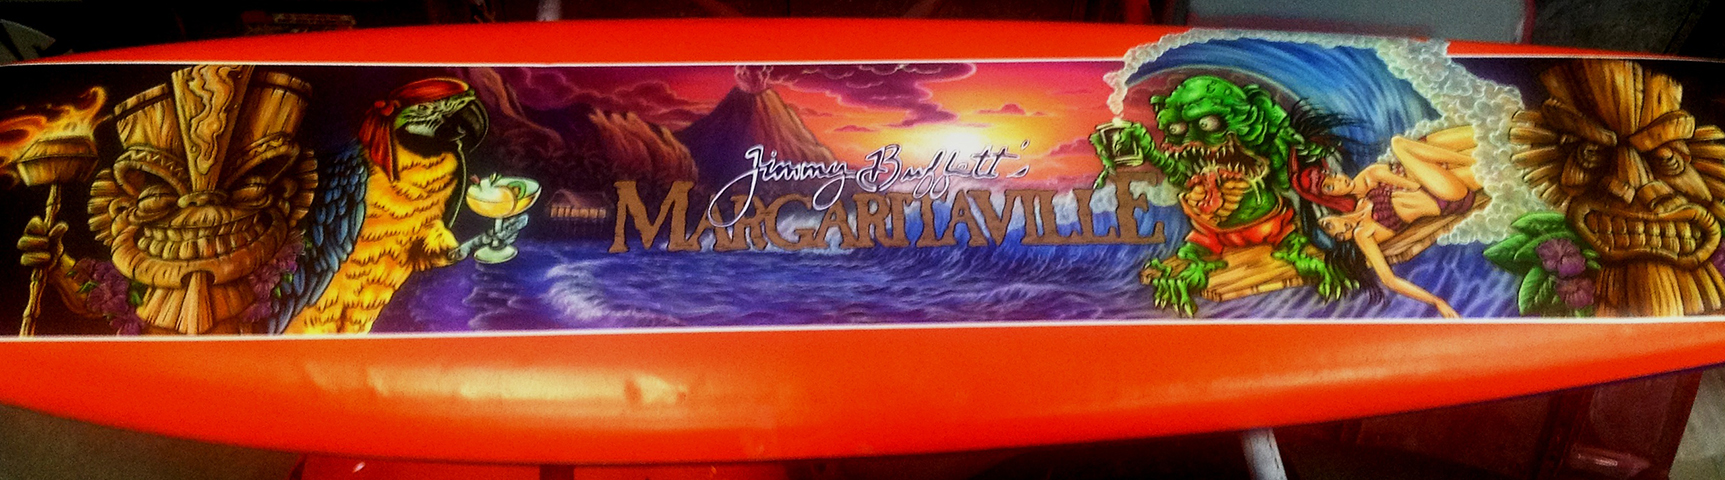 uncle-d-s-airbrushing-motorcycles-margaritaville-9